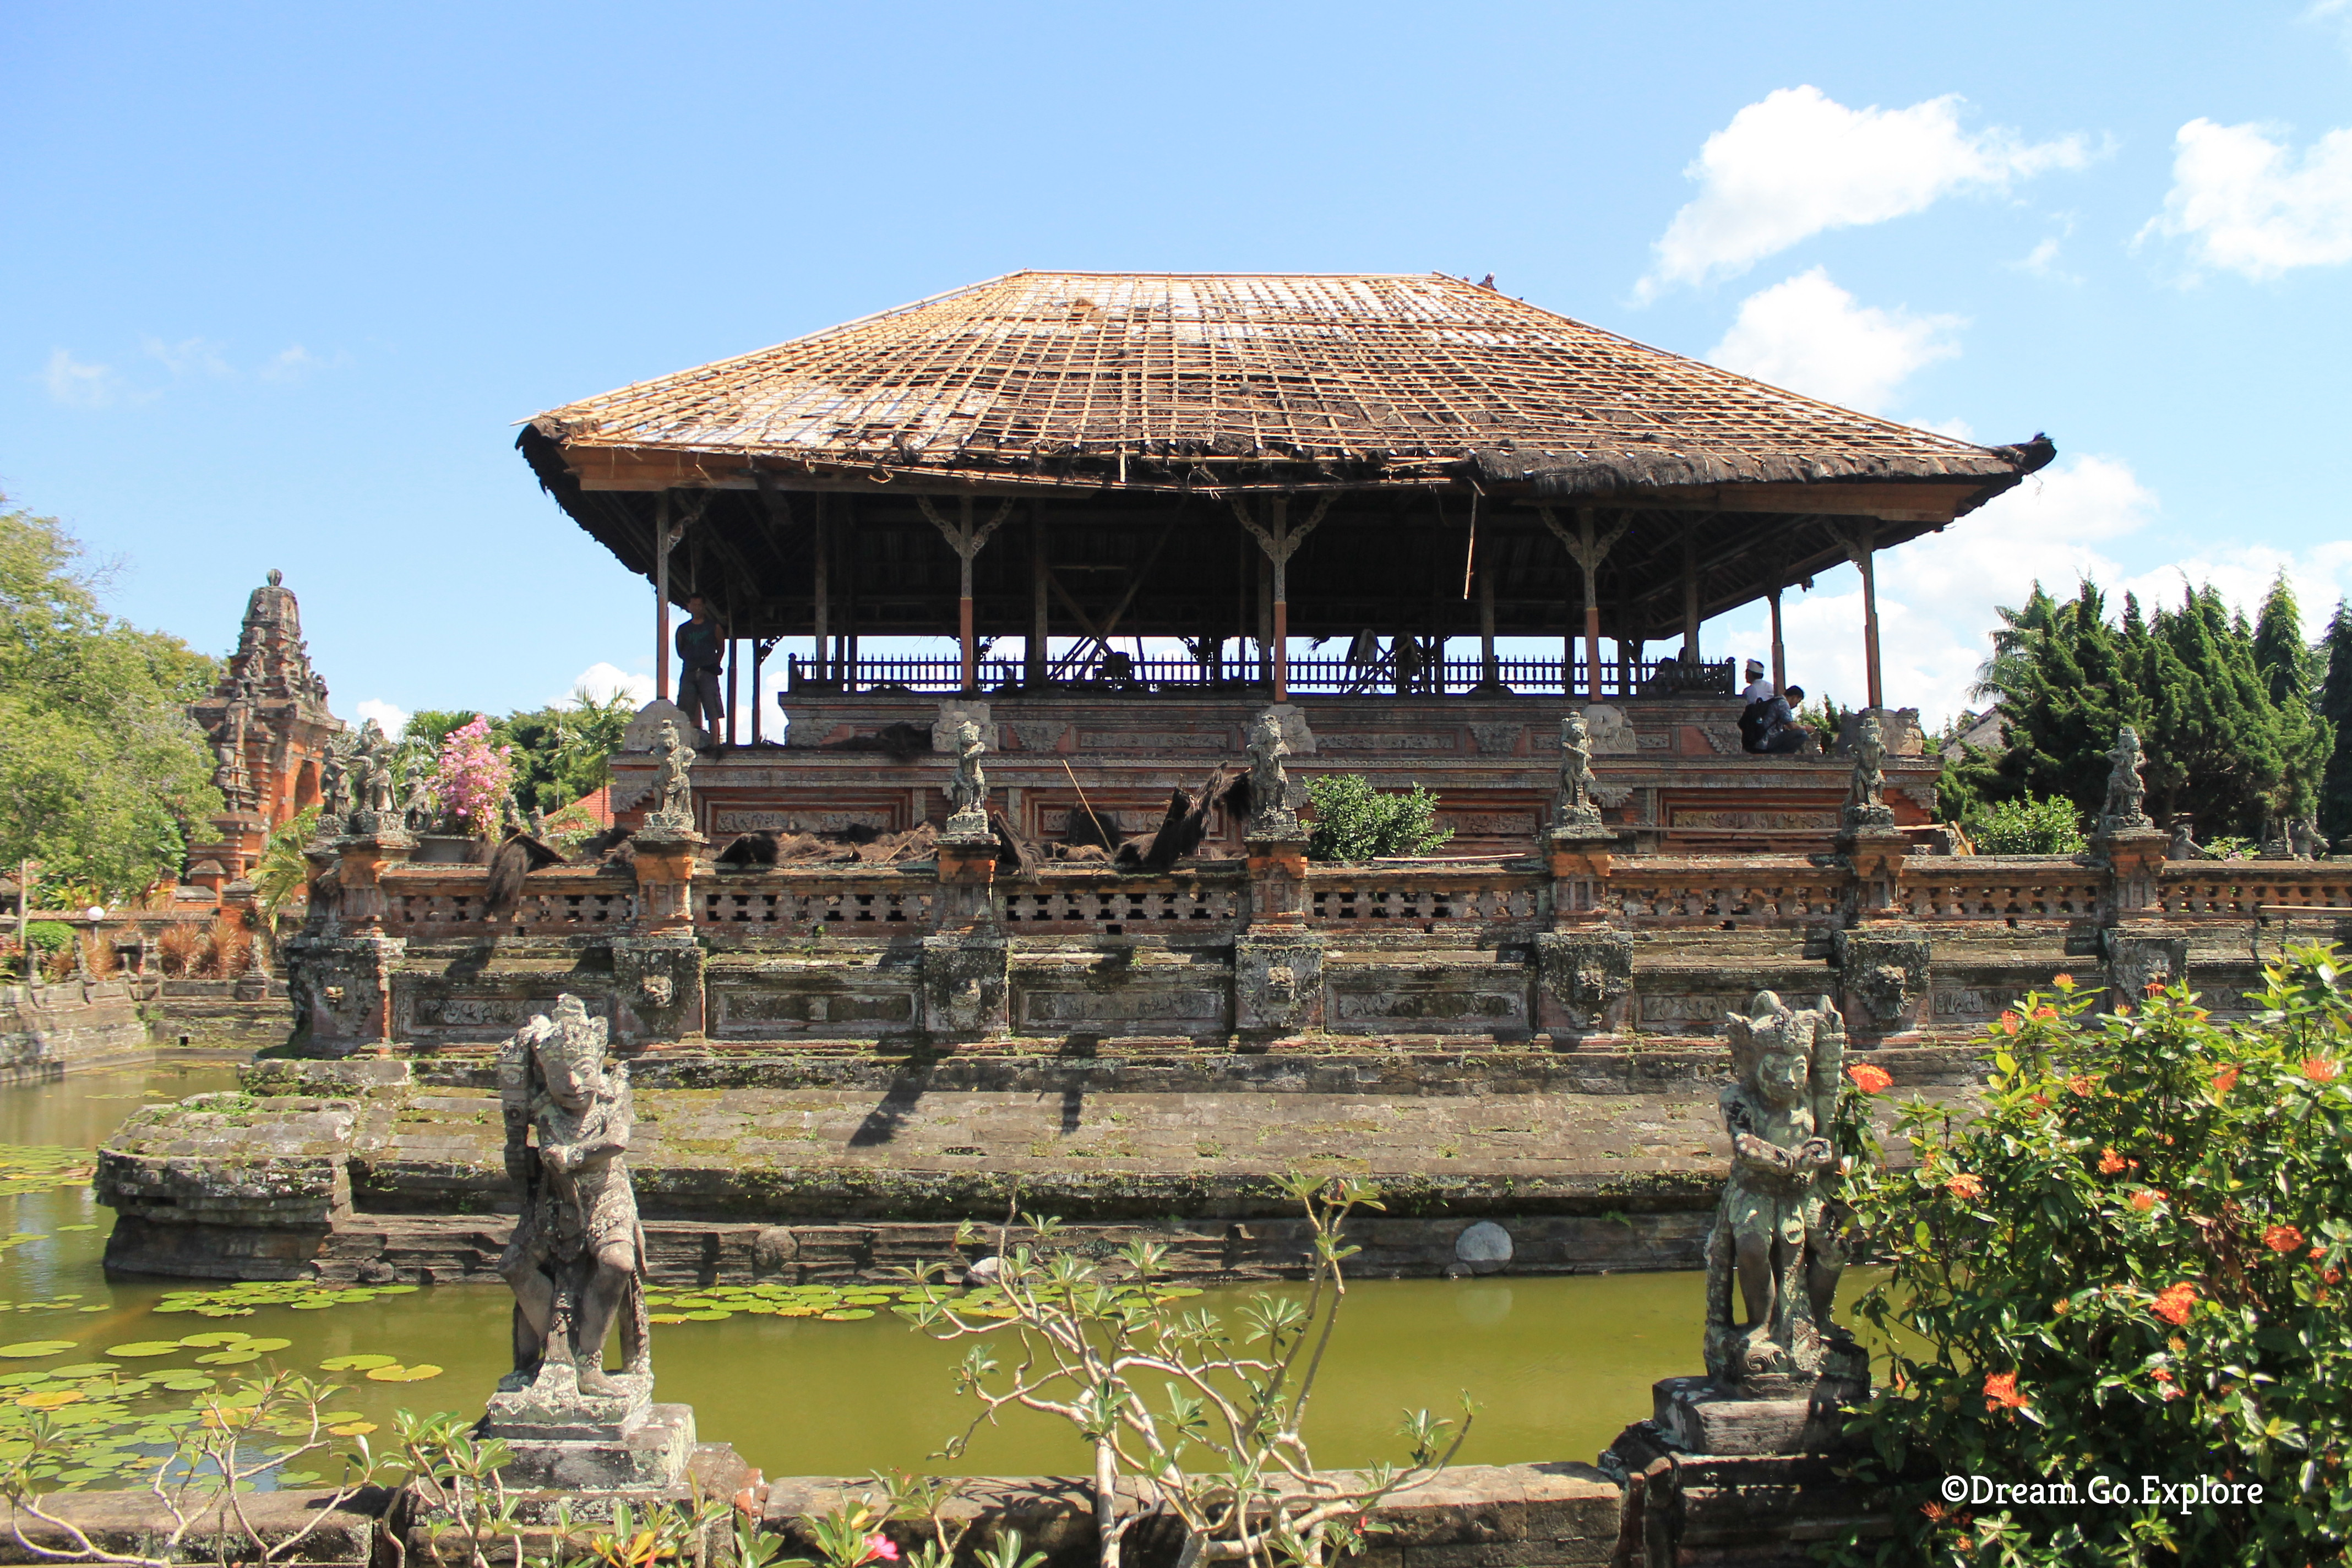 The Palace of Klungkung (Bali, Indonesia) — Der Palast von Klungkung (Bali, Indonesien)